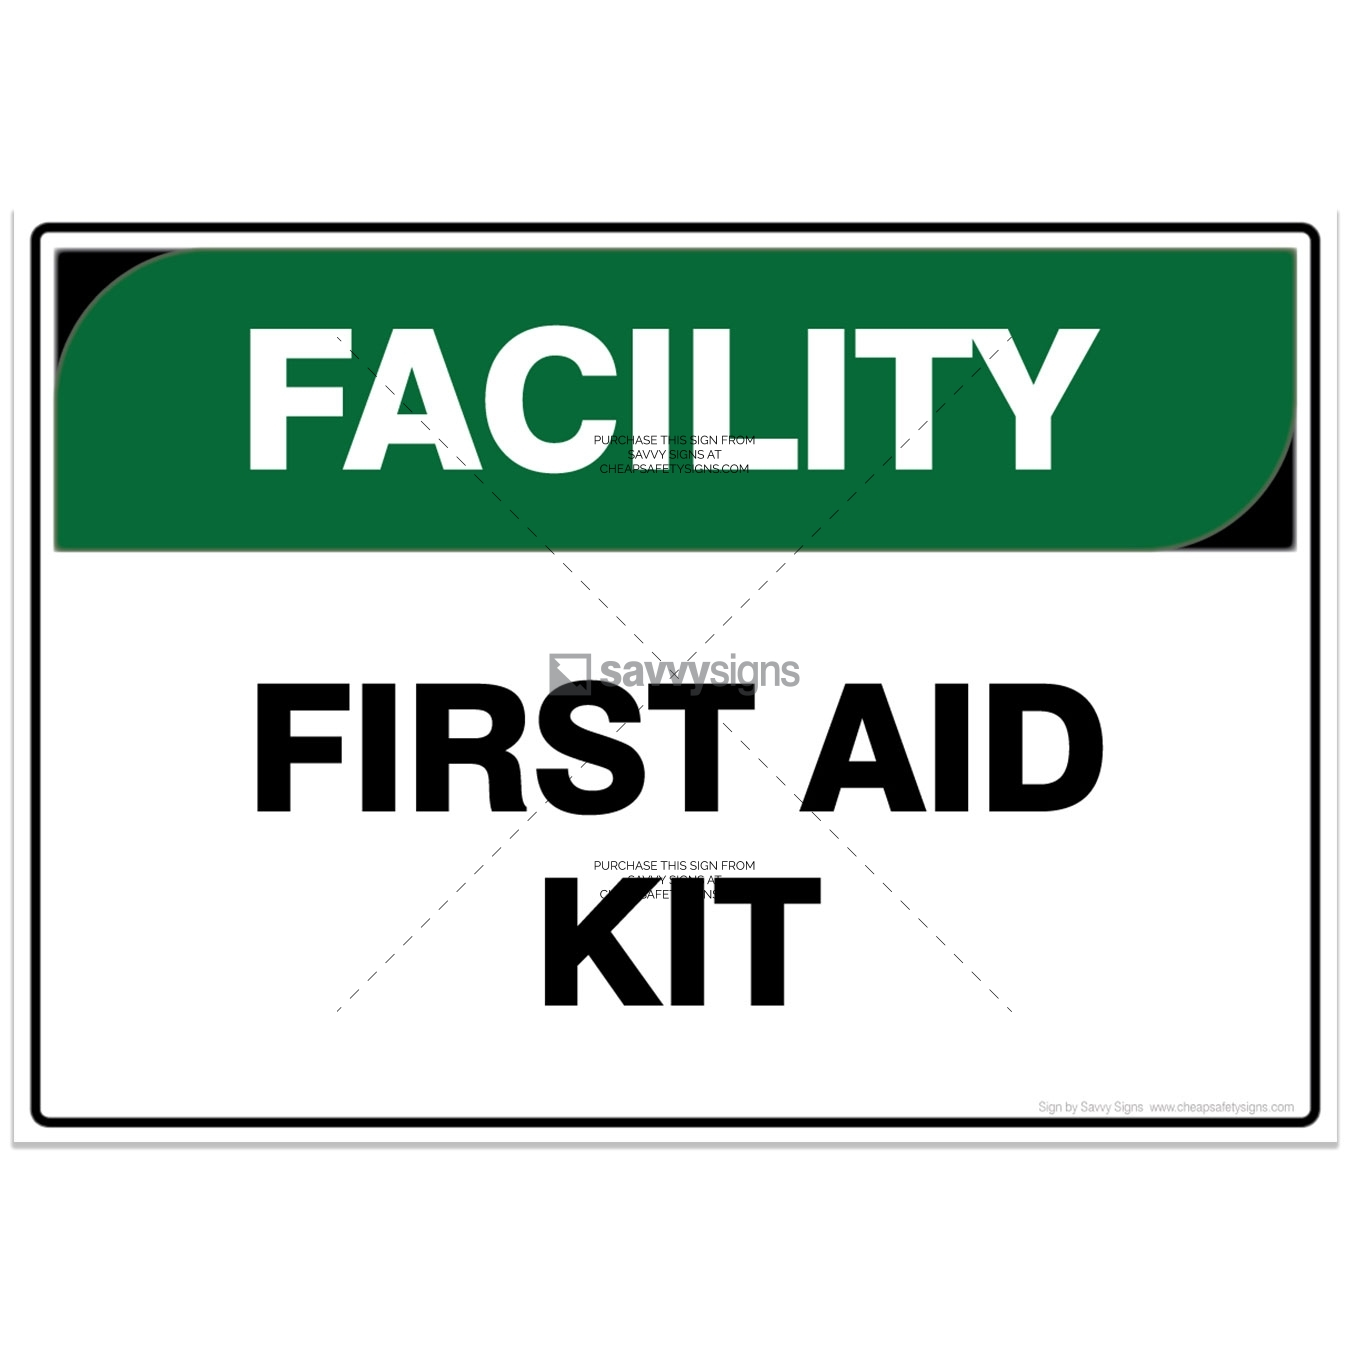 SSFAC3028-FACILITY-Workplace-Safety-Signs_Savvy-Signs_v4